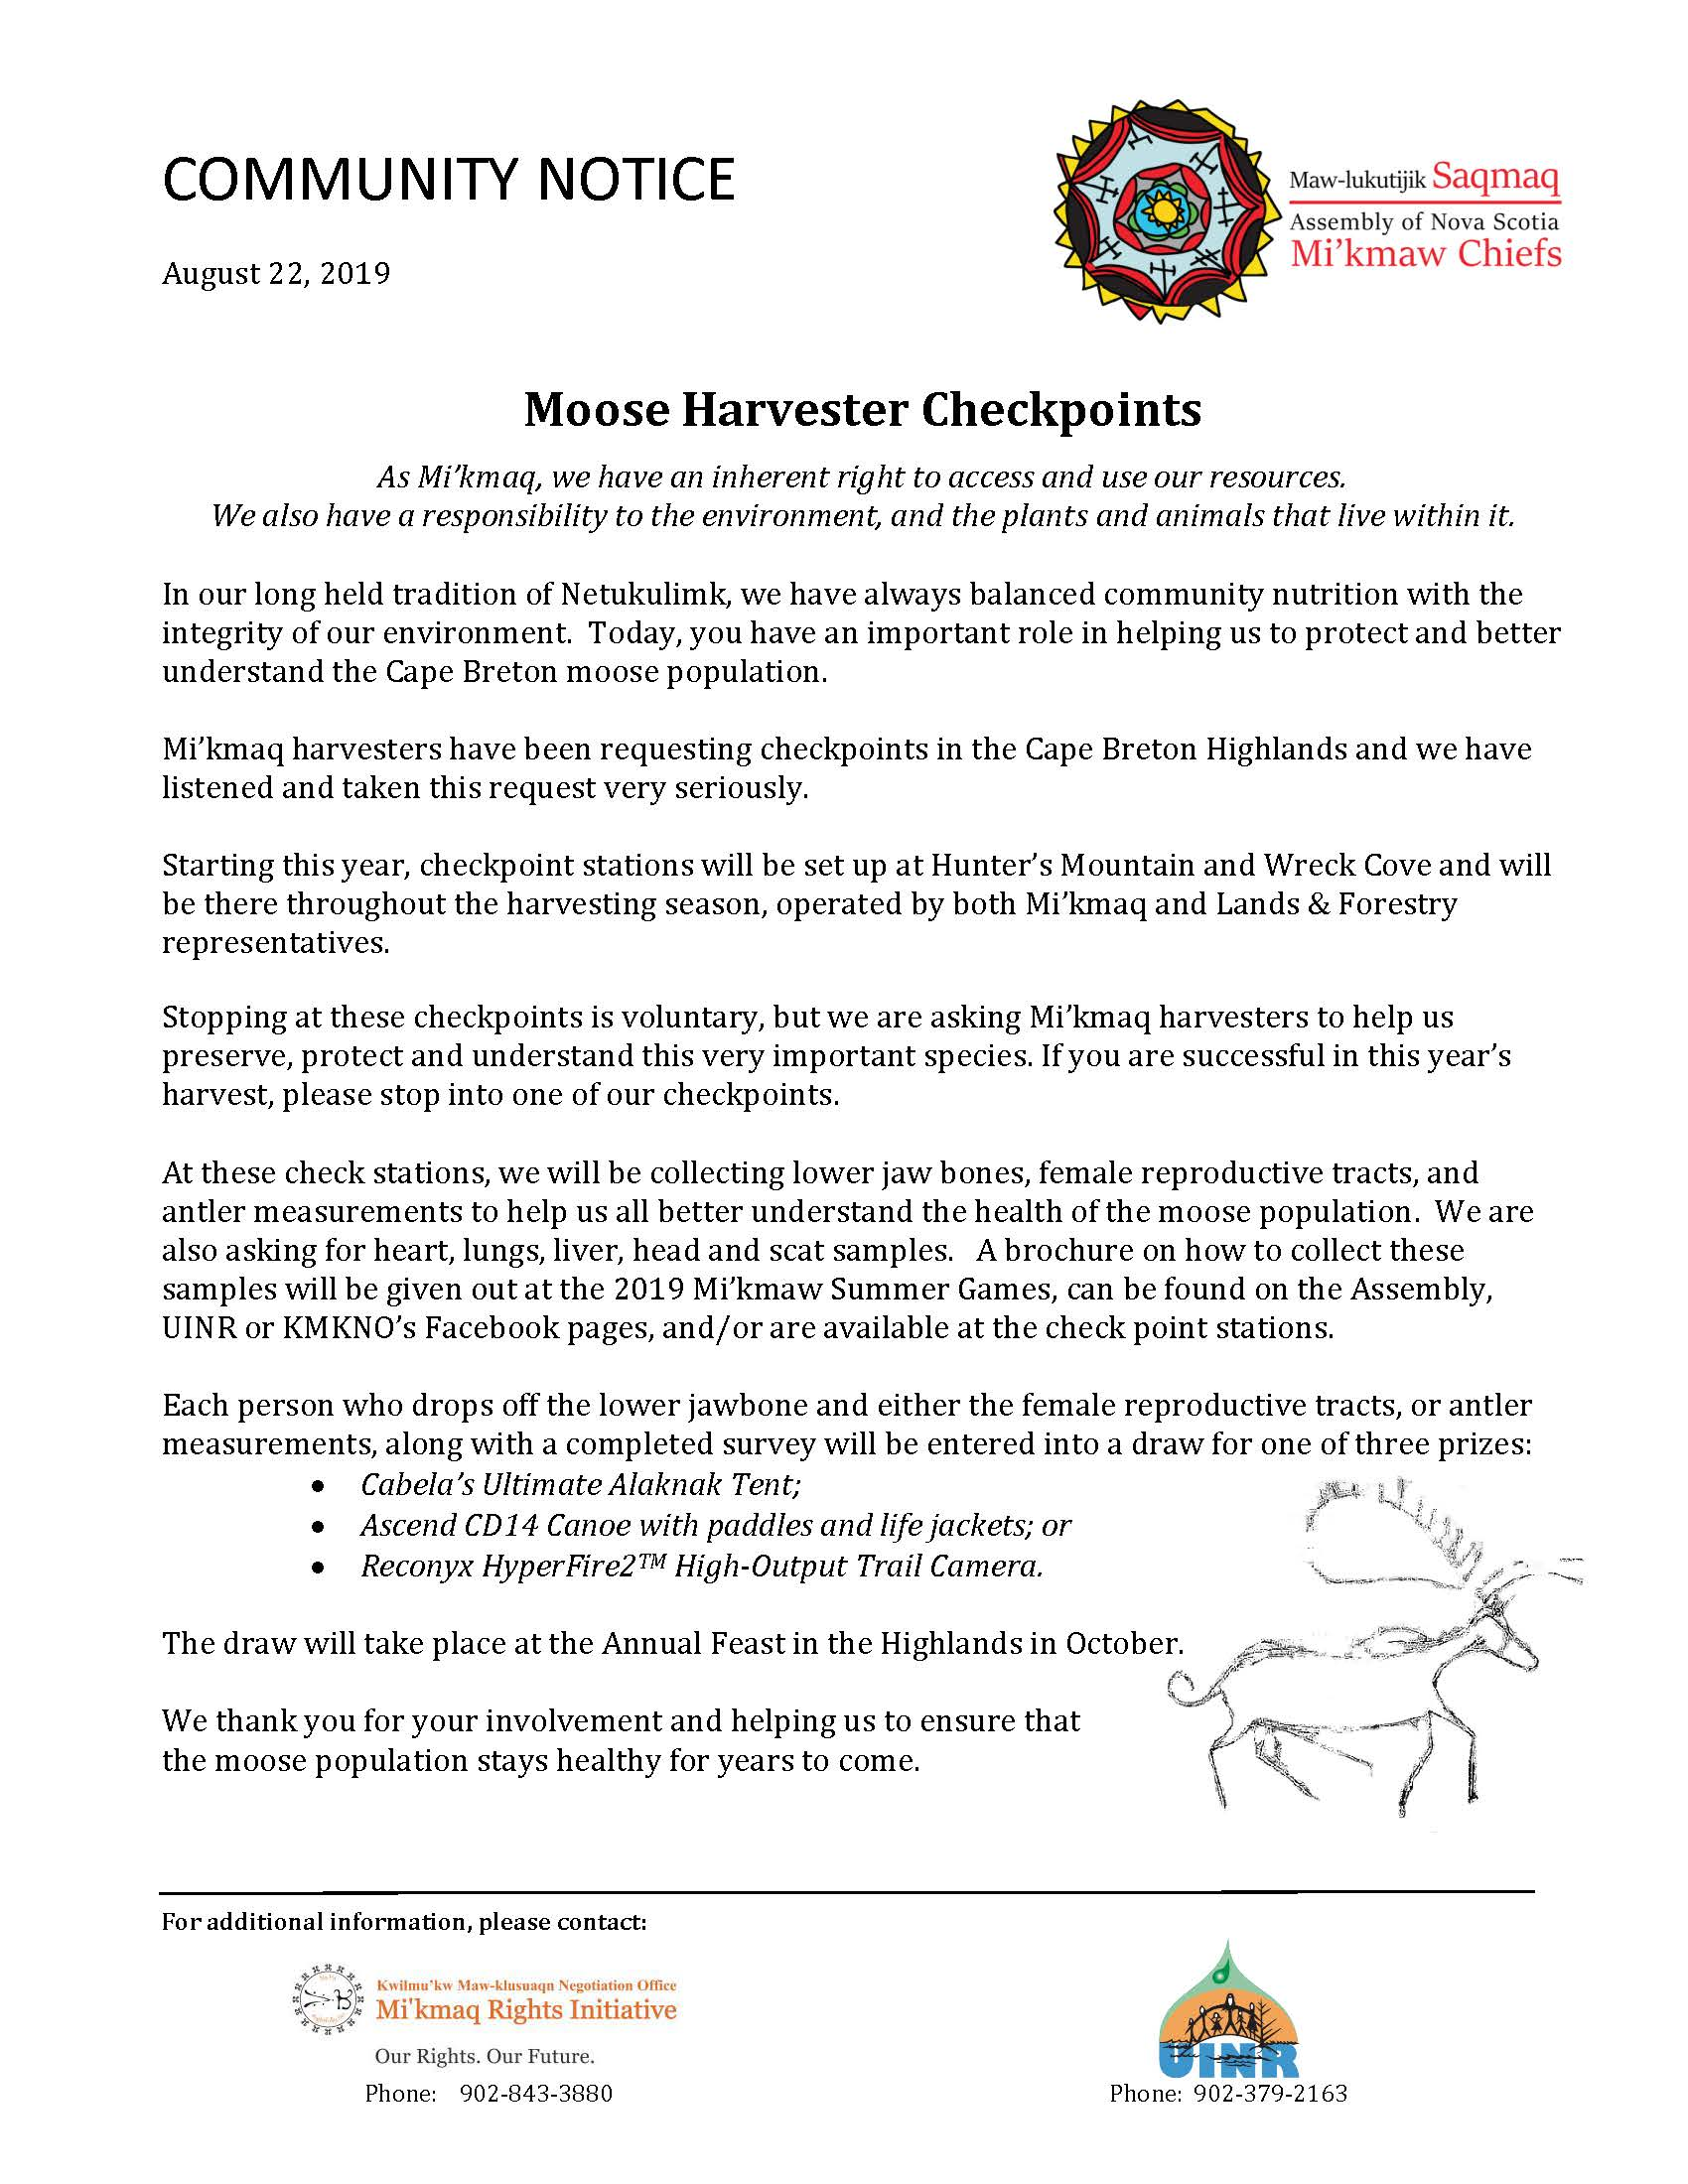 Community Notice_Moose Checkpoints_22Aug19.jpg